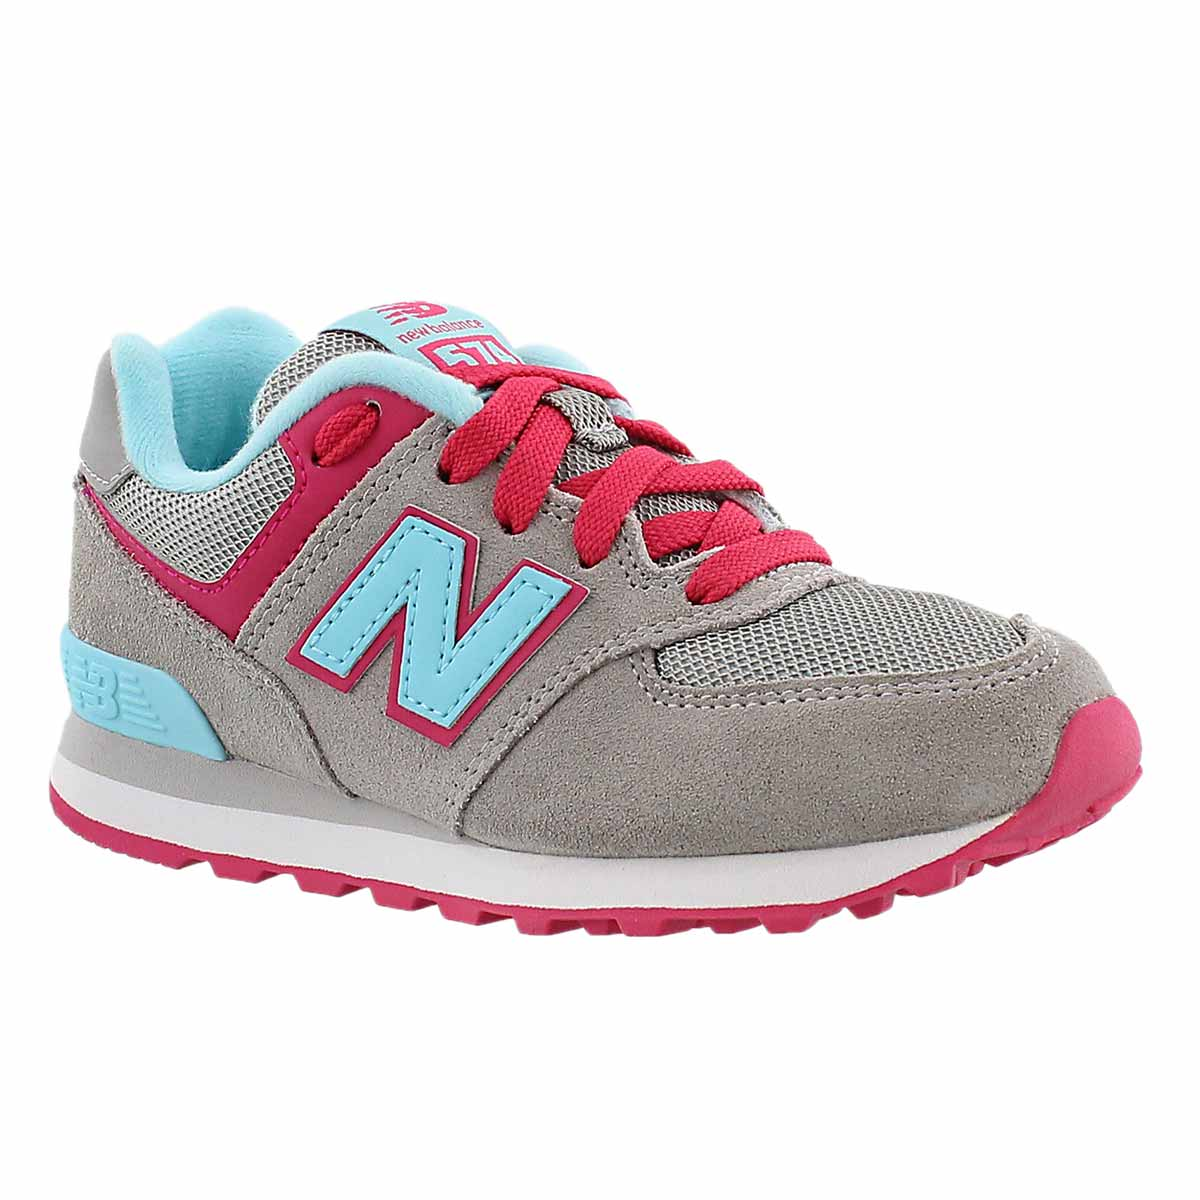 Girls' 574 grey/light blue lace-up sneakers